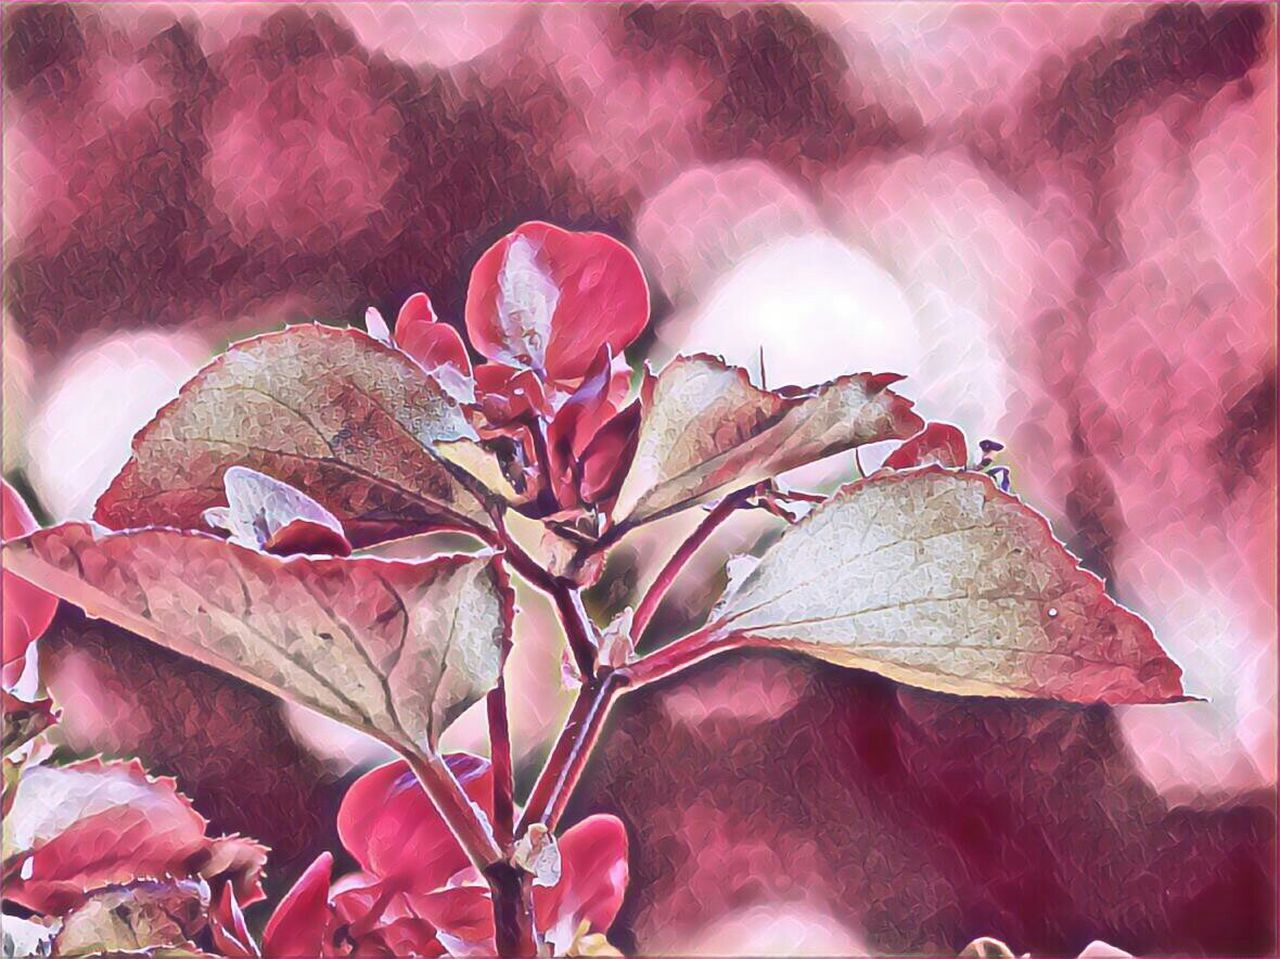 dry, leaf, nature, fragility, outdoors, change, day, beauty in nature, red, no people, pink color, autumn, close-up, flower, flower head